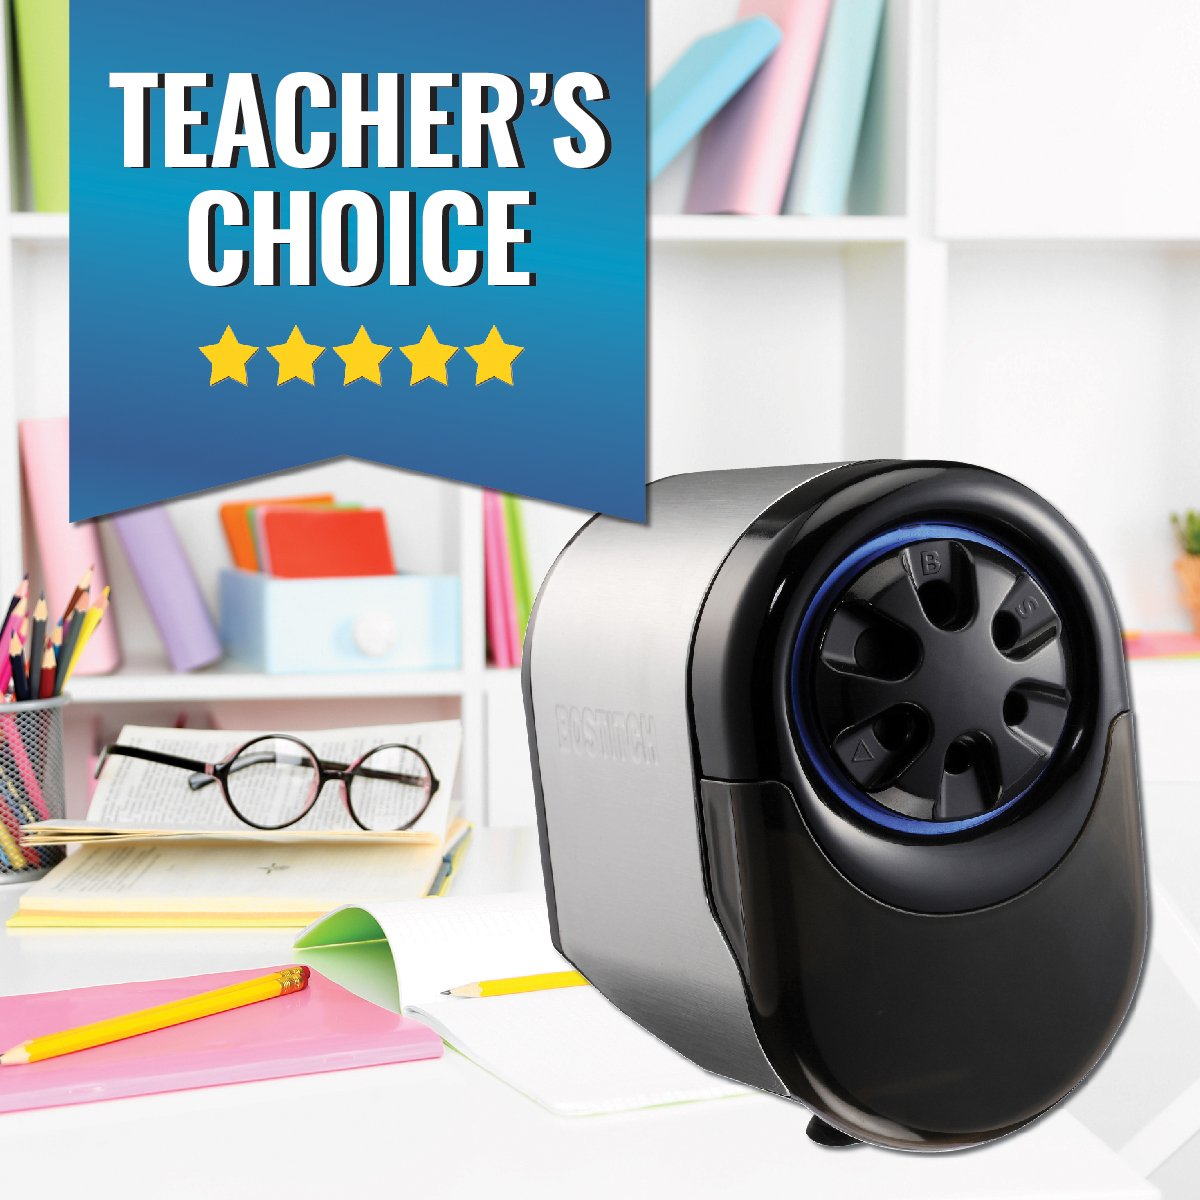 Bostitch Antimicrobial QuietSharp Glow  Extra Heavy Duty Classroom Electric Pencil Sharpener with Replaceable Cutter Cartridge System, Silver/Black (EPS11HC) by Bostitch Office (Image #6)